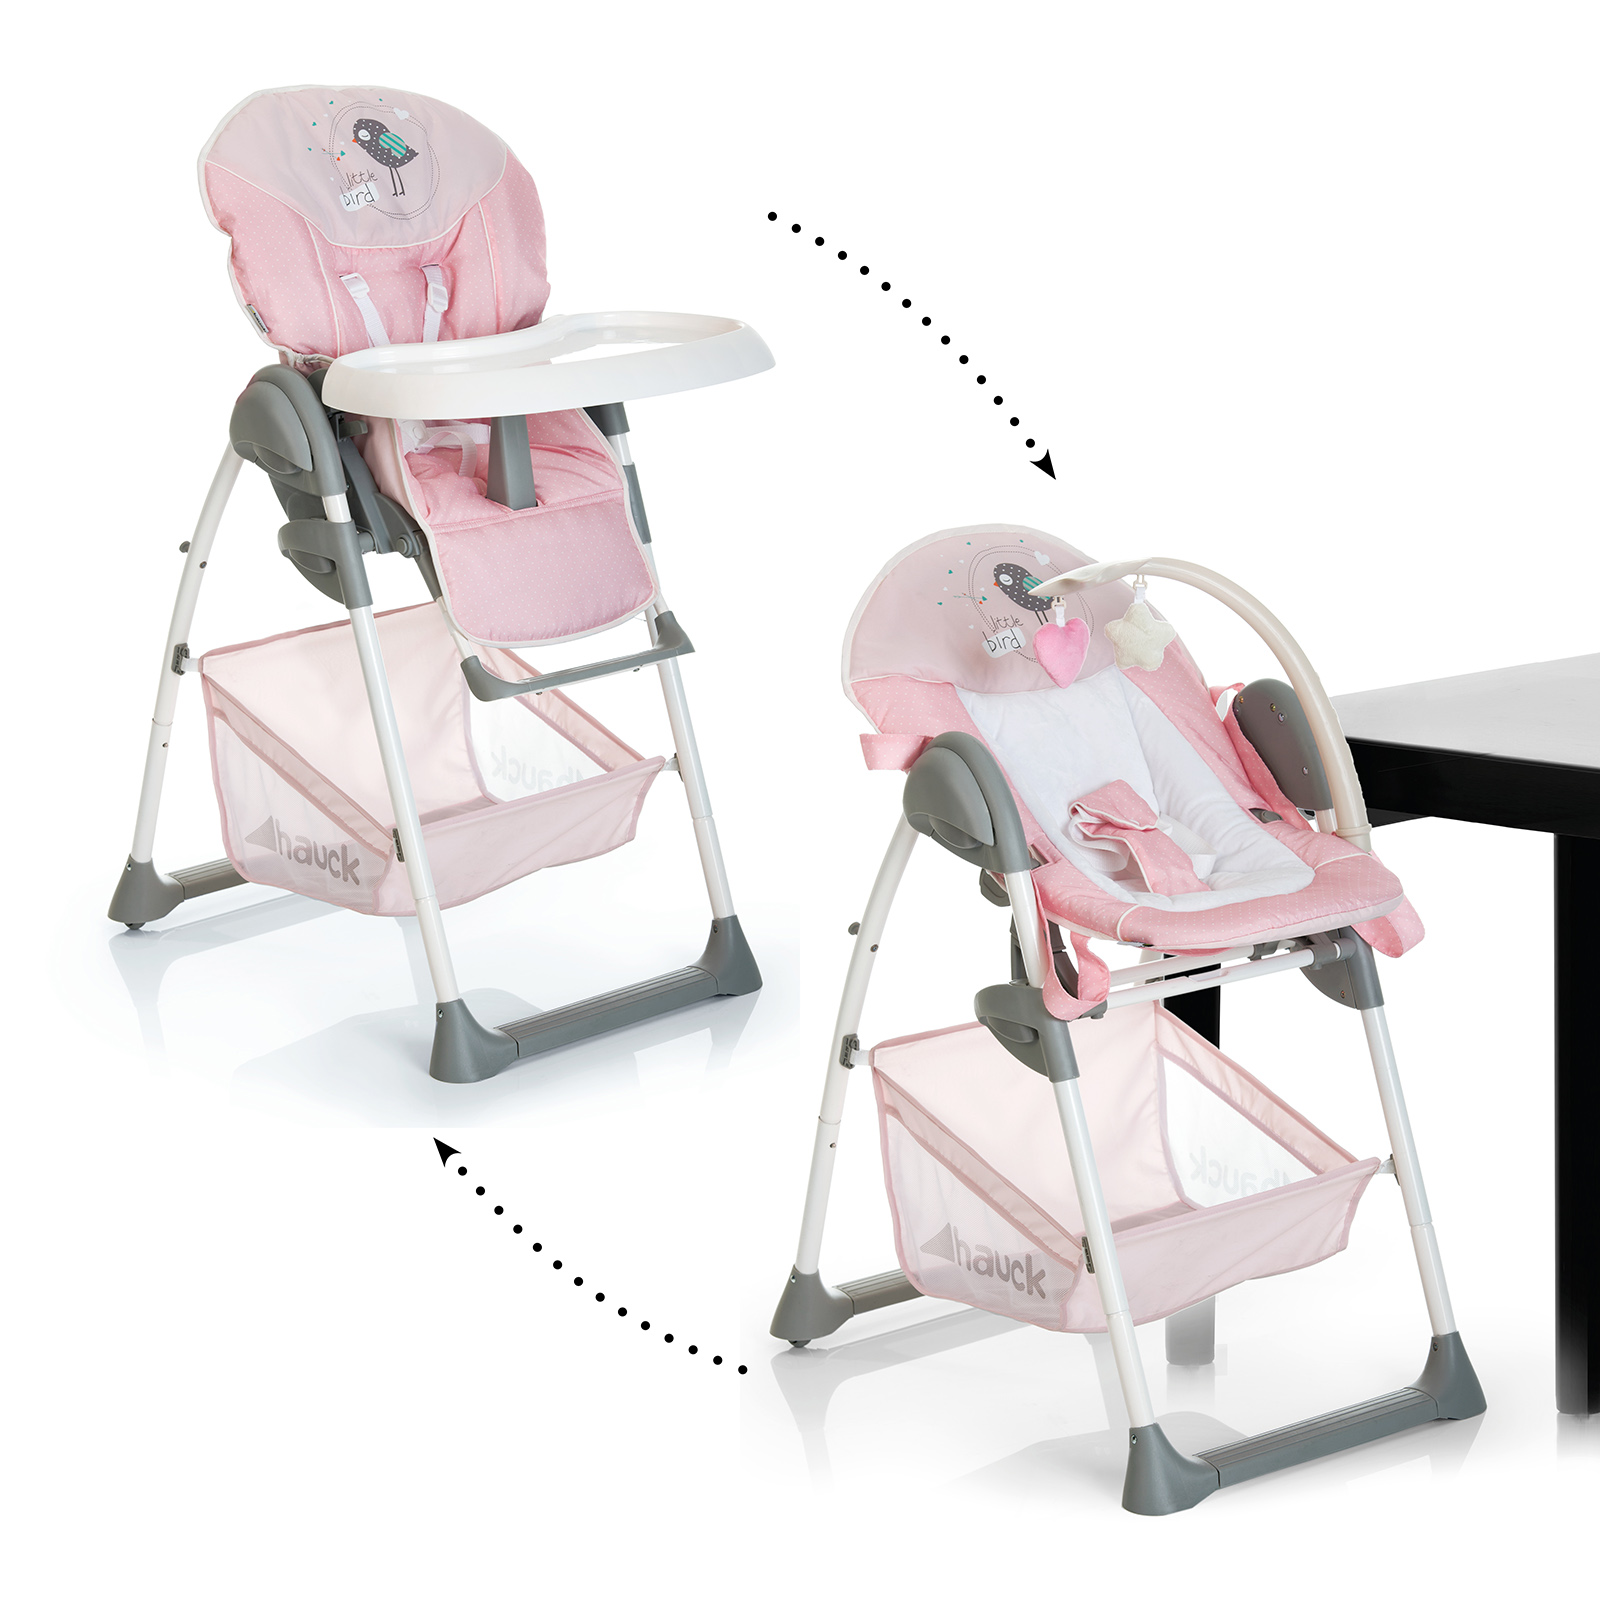 hauck high chair desk ball new sit n relax 2 in 1 highchair baby